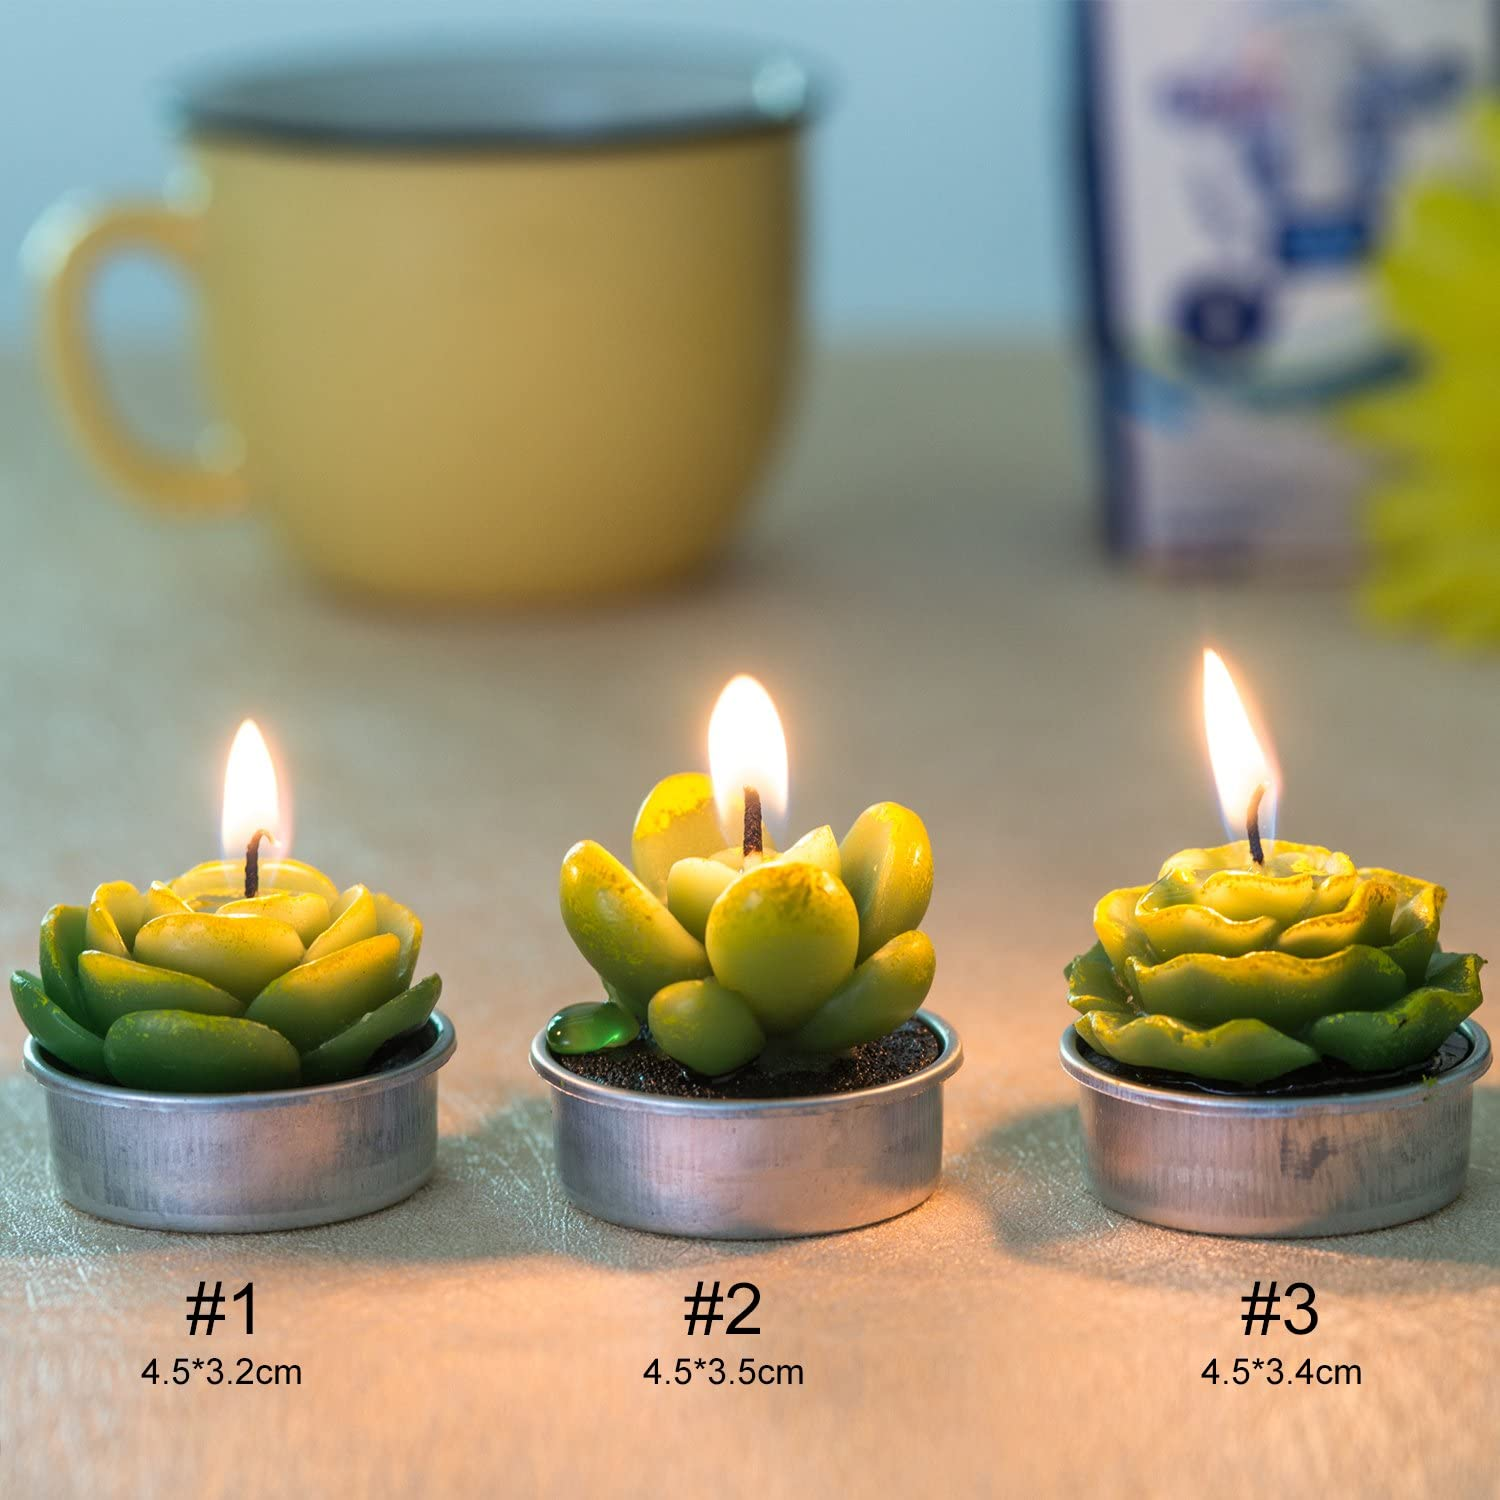 COCOMOON Cactus Tealight Candles,12 Pieces Handmade Delicate Succulent Cactus Candles for Party Wedding Spa Home Decoration Gifts